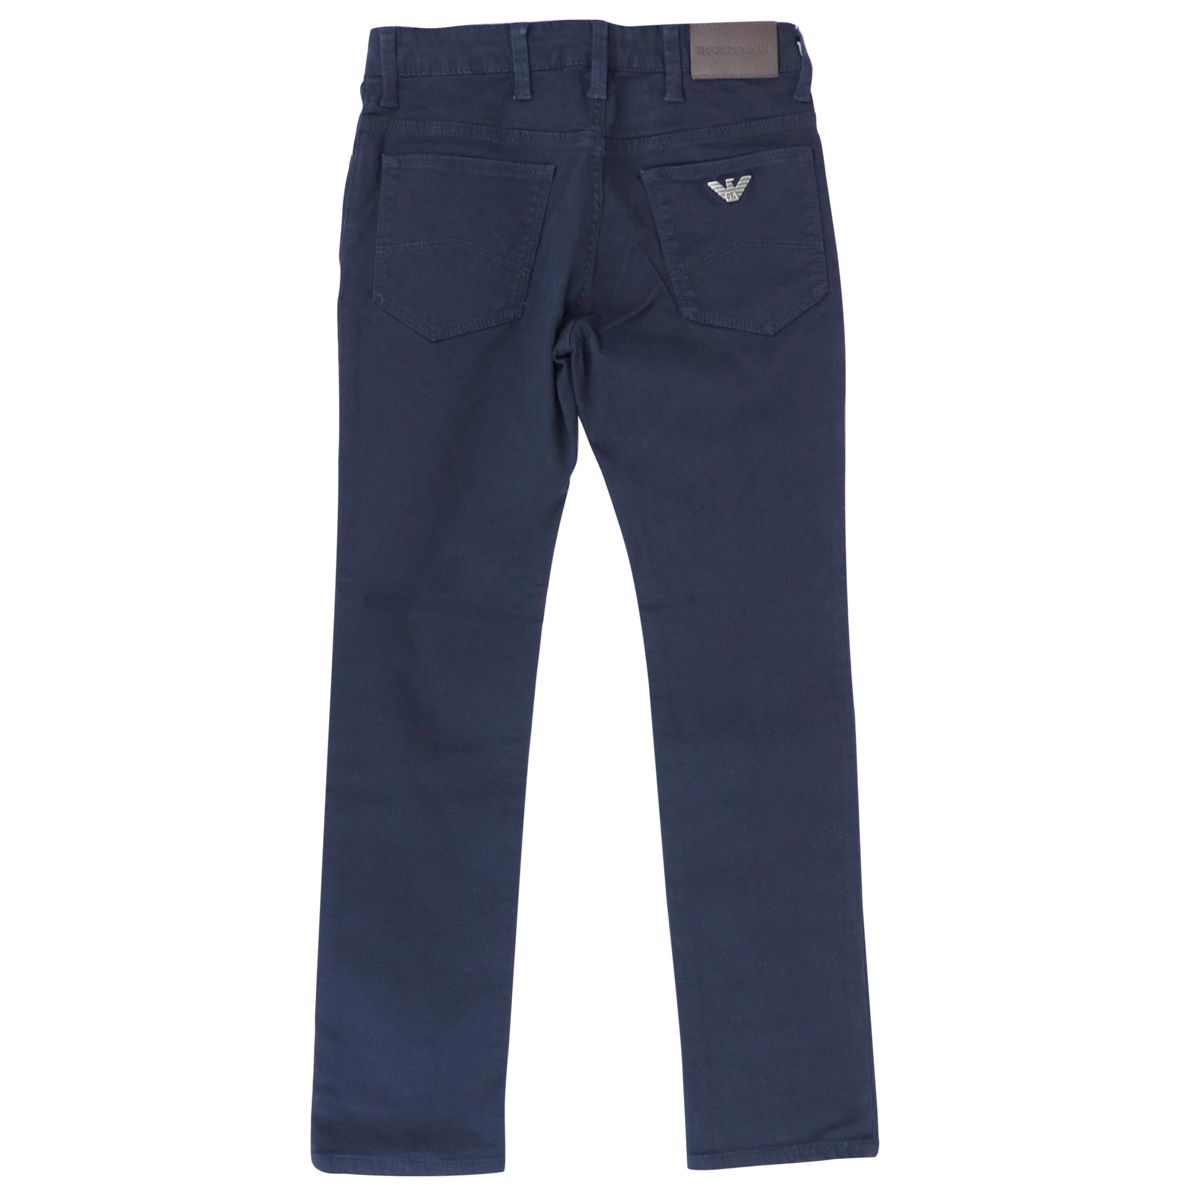 5-pocket slim stretch cotton trousers Blue Emporio Armani